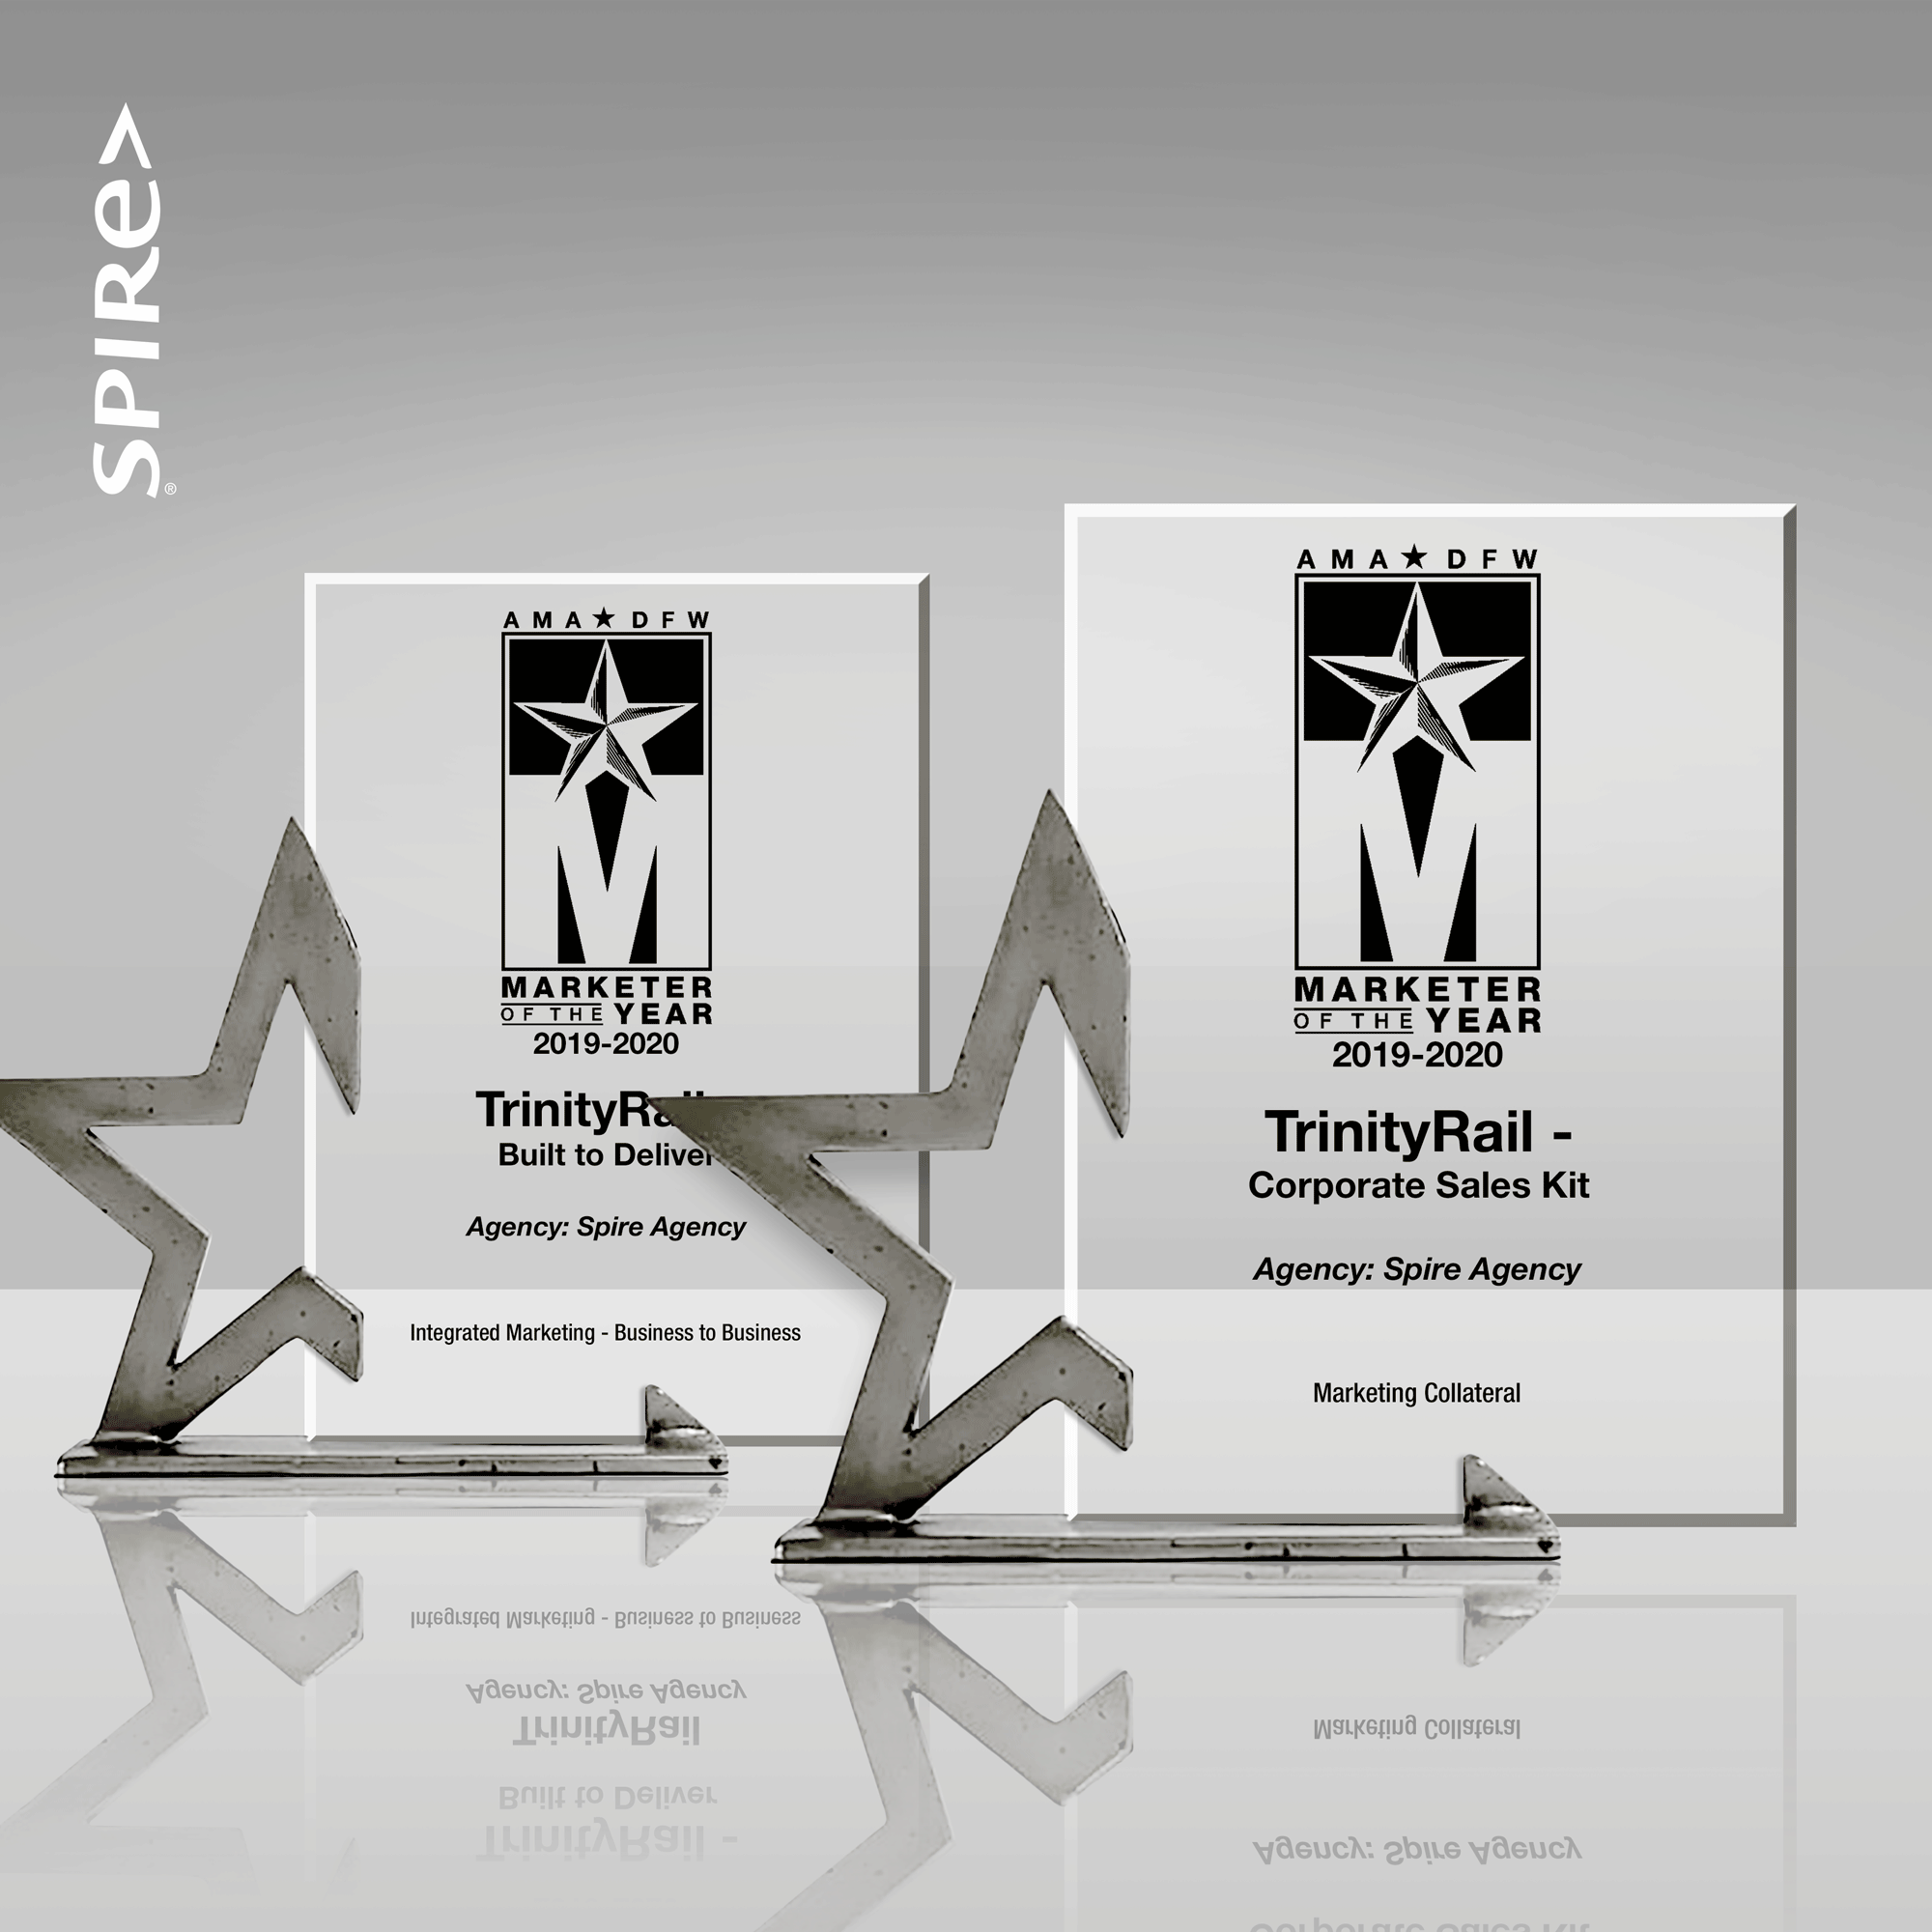 Spire Agency Awarded Two 2020 AMA DFW Marketer of the Year Awards